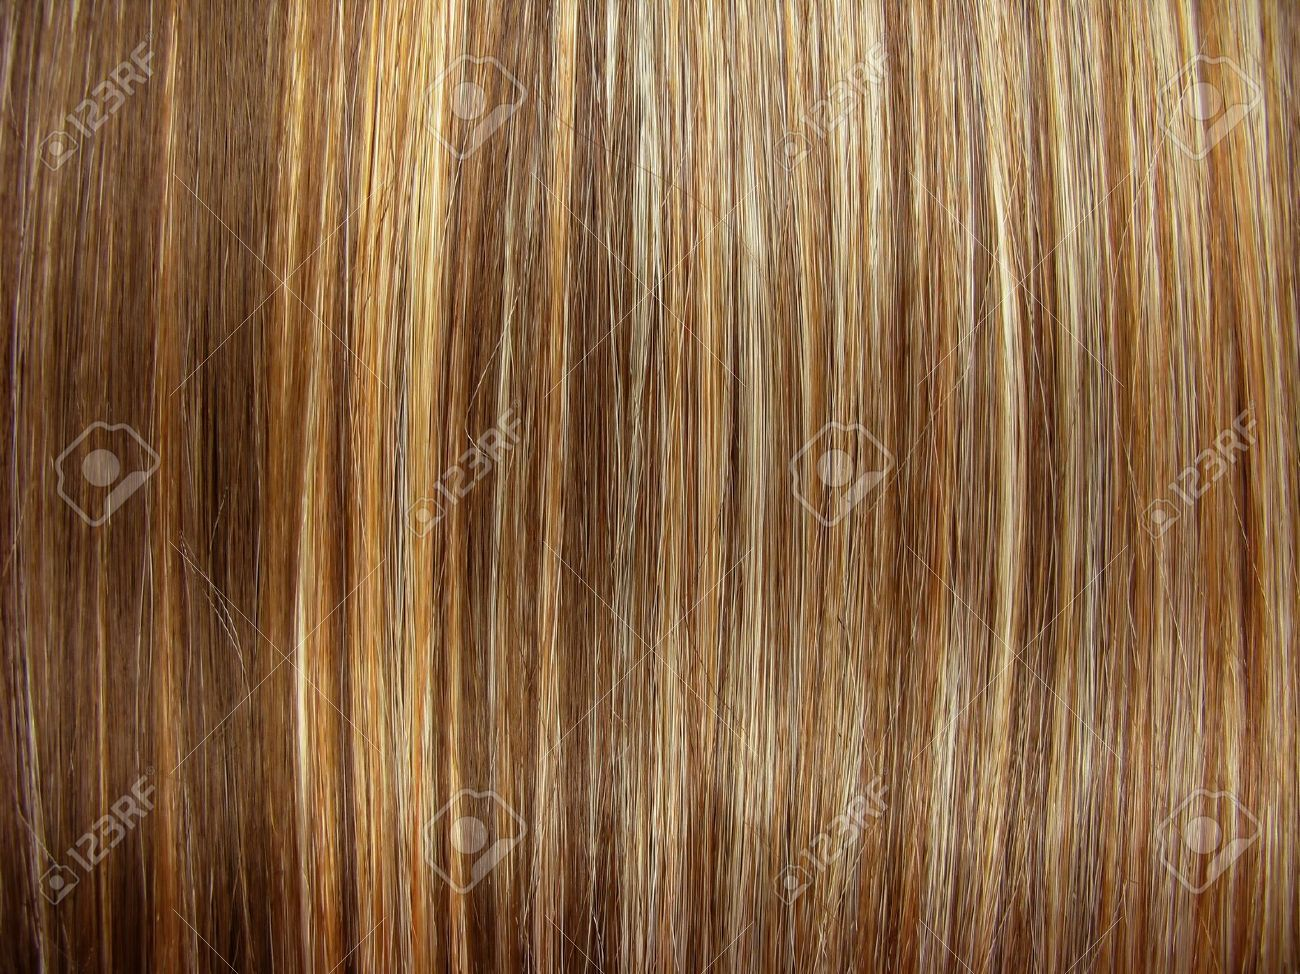 highlight hair texture abstract background Stock Photo - 12153959